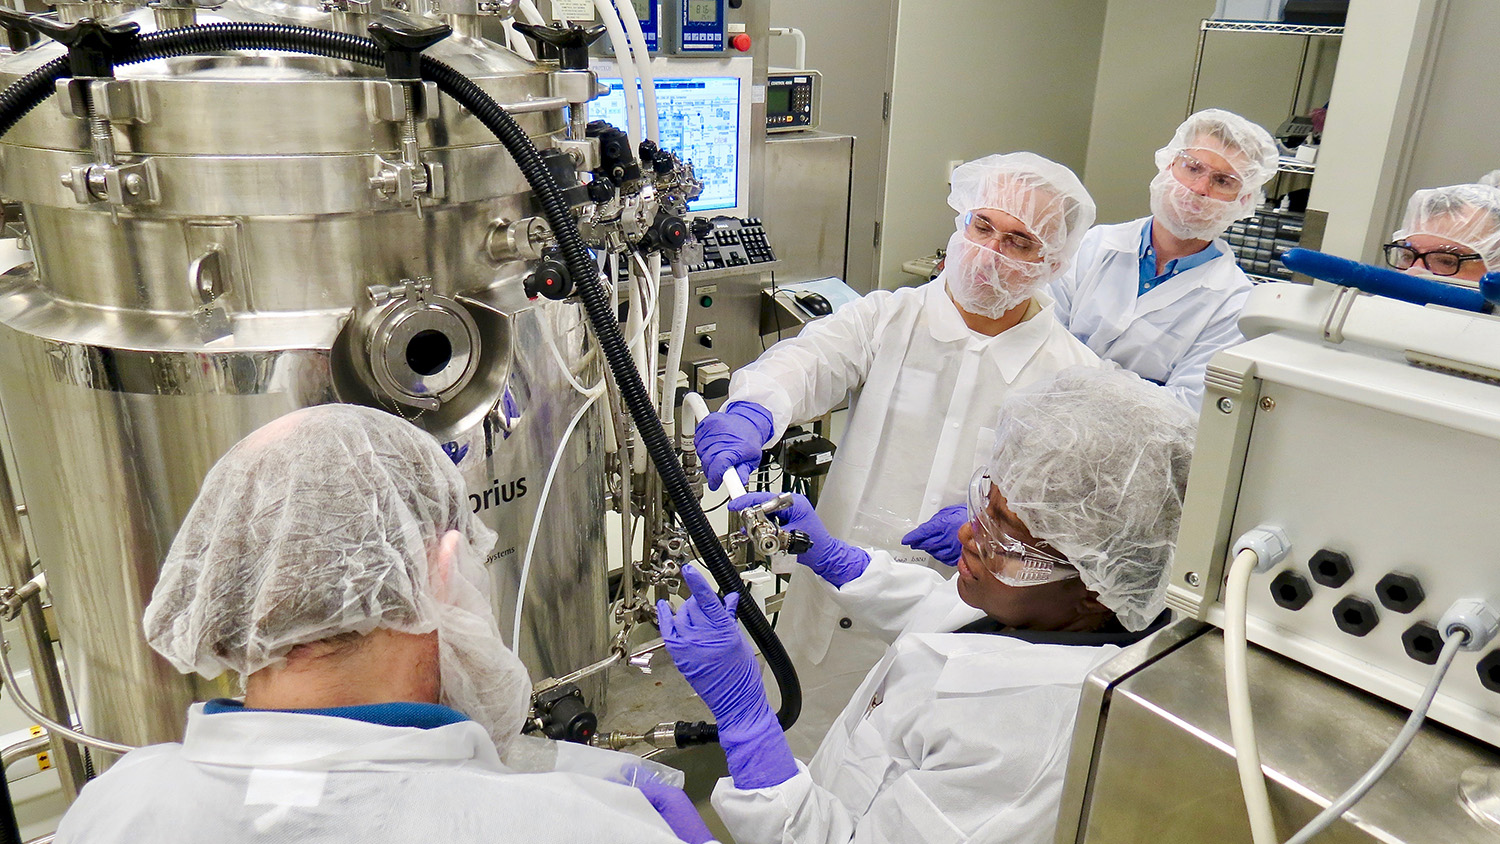 Participants in an upstream bioprocessing course complete a changeover procedure for the 300 L bioreactor in BTEC's pilot-scale upstream suite.